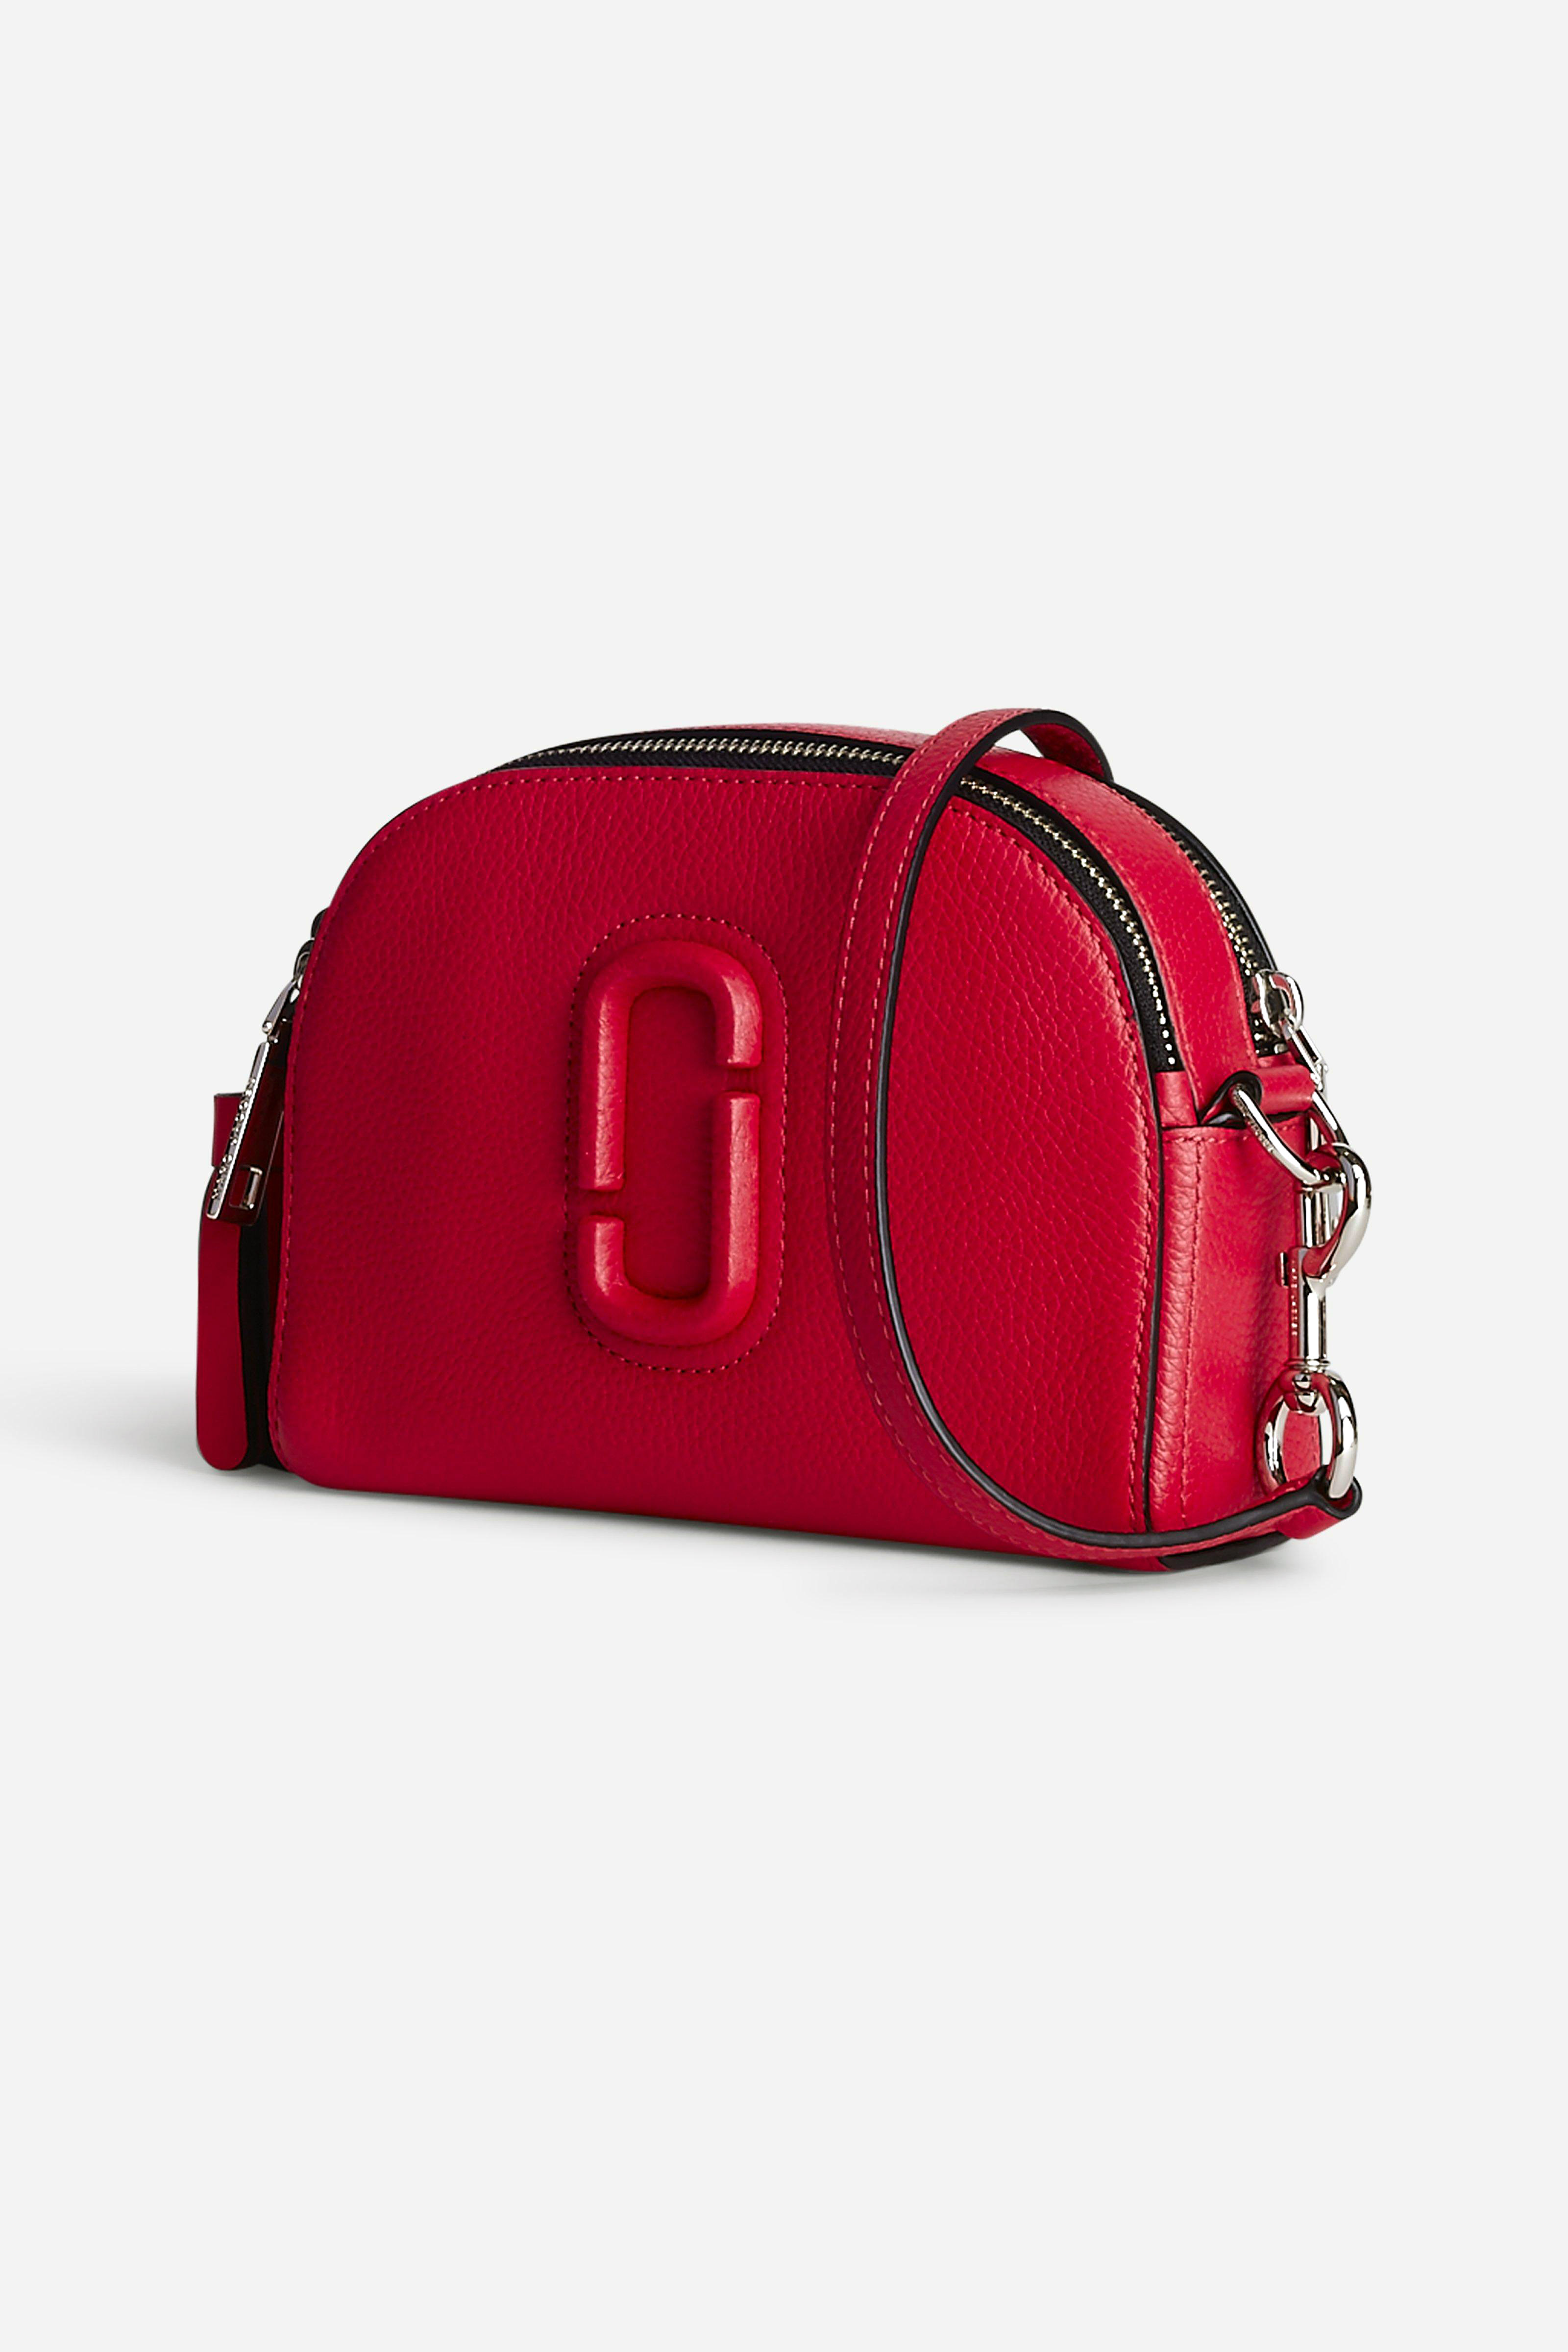 Marc Jacobs 24 - Shutter Small Camera Bag - Pink